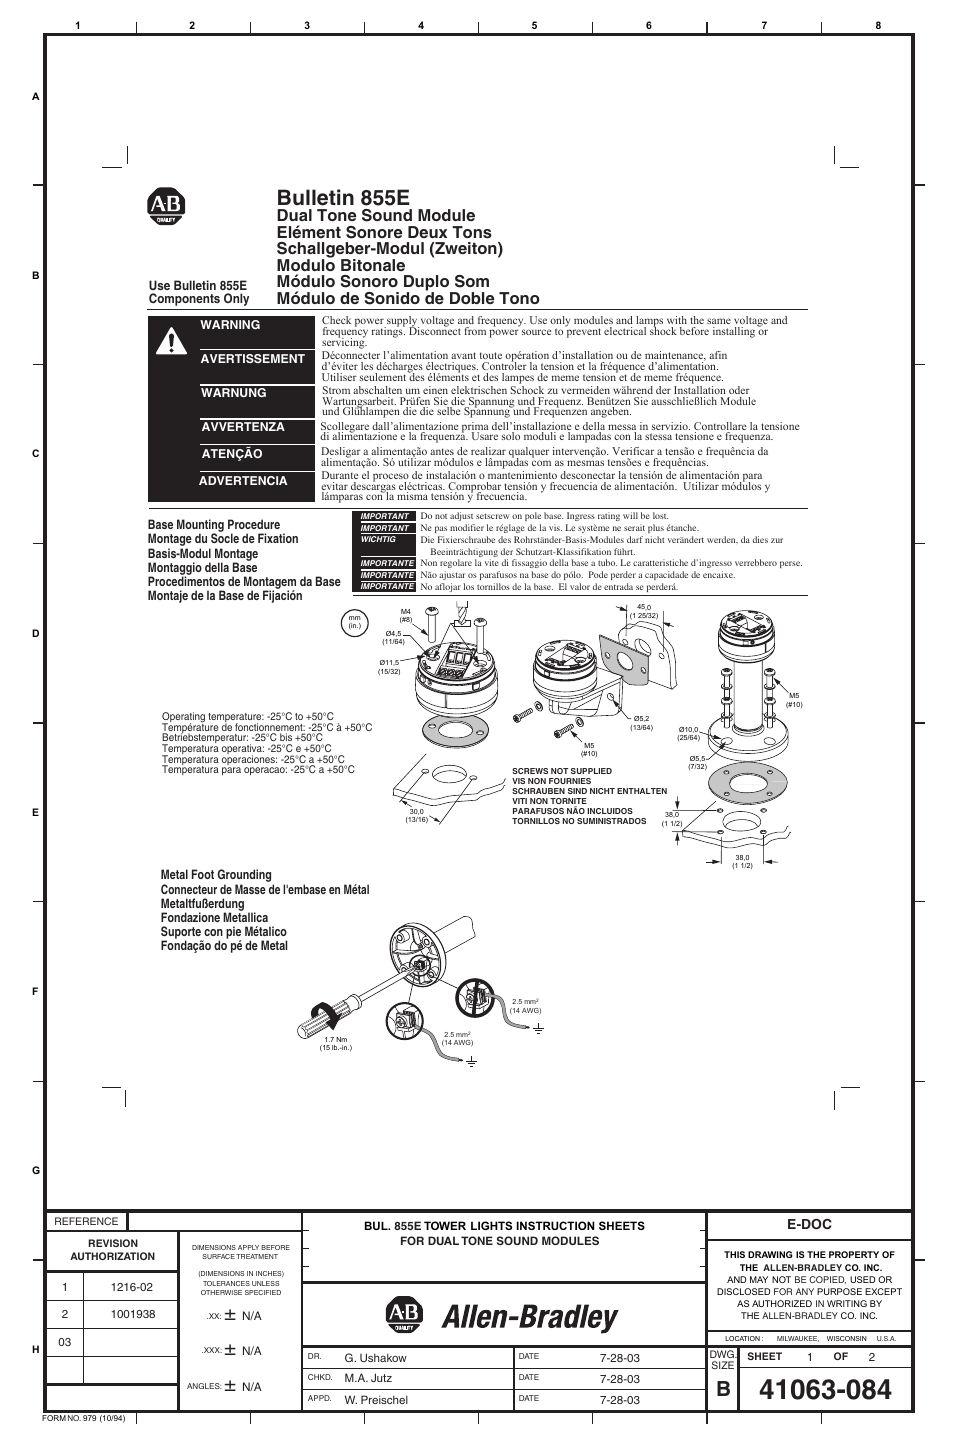 rockwell automation 855e _ dual tone sound module page1 rockwell automation 855e _ dual tone sound module user manual 2 855e bcb wiring diagram at webbmarketing.co